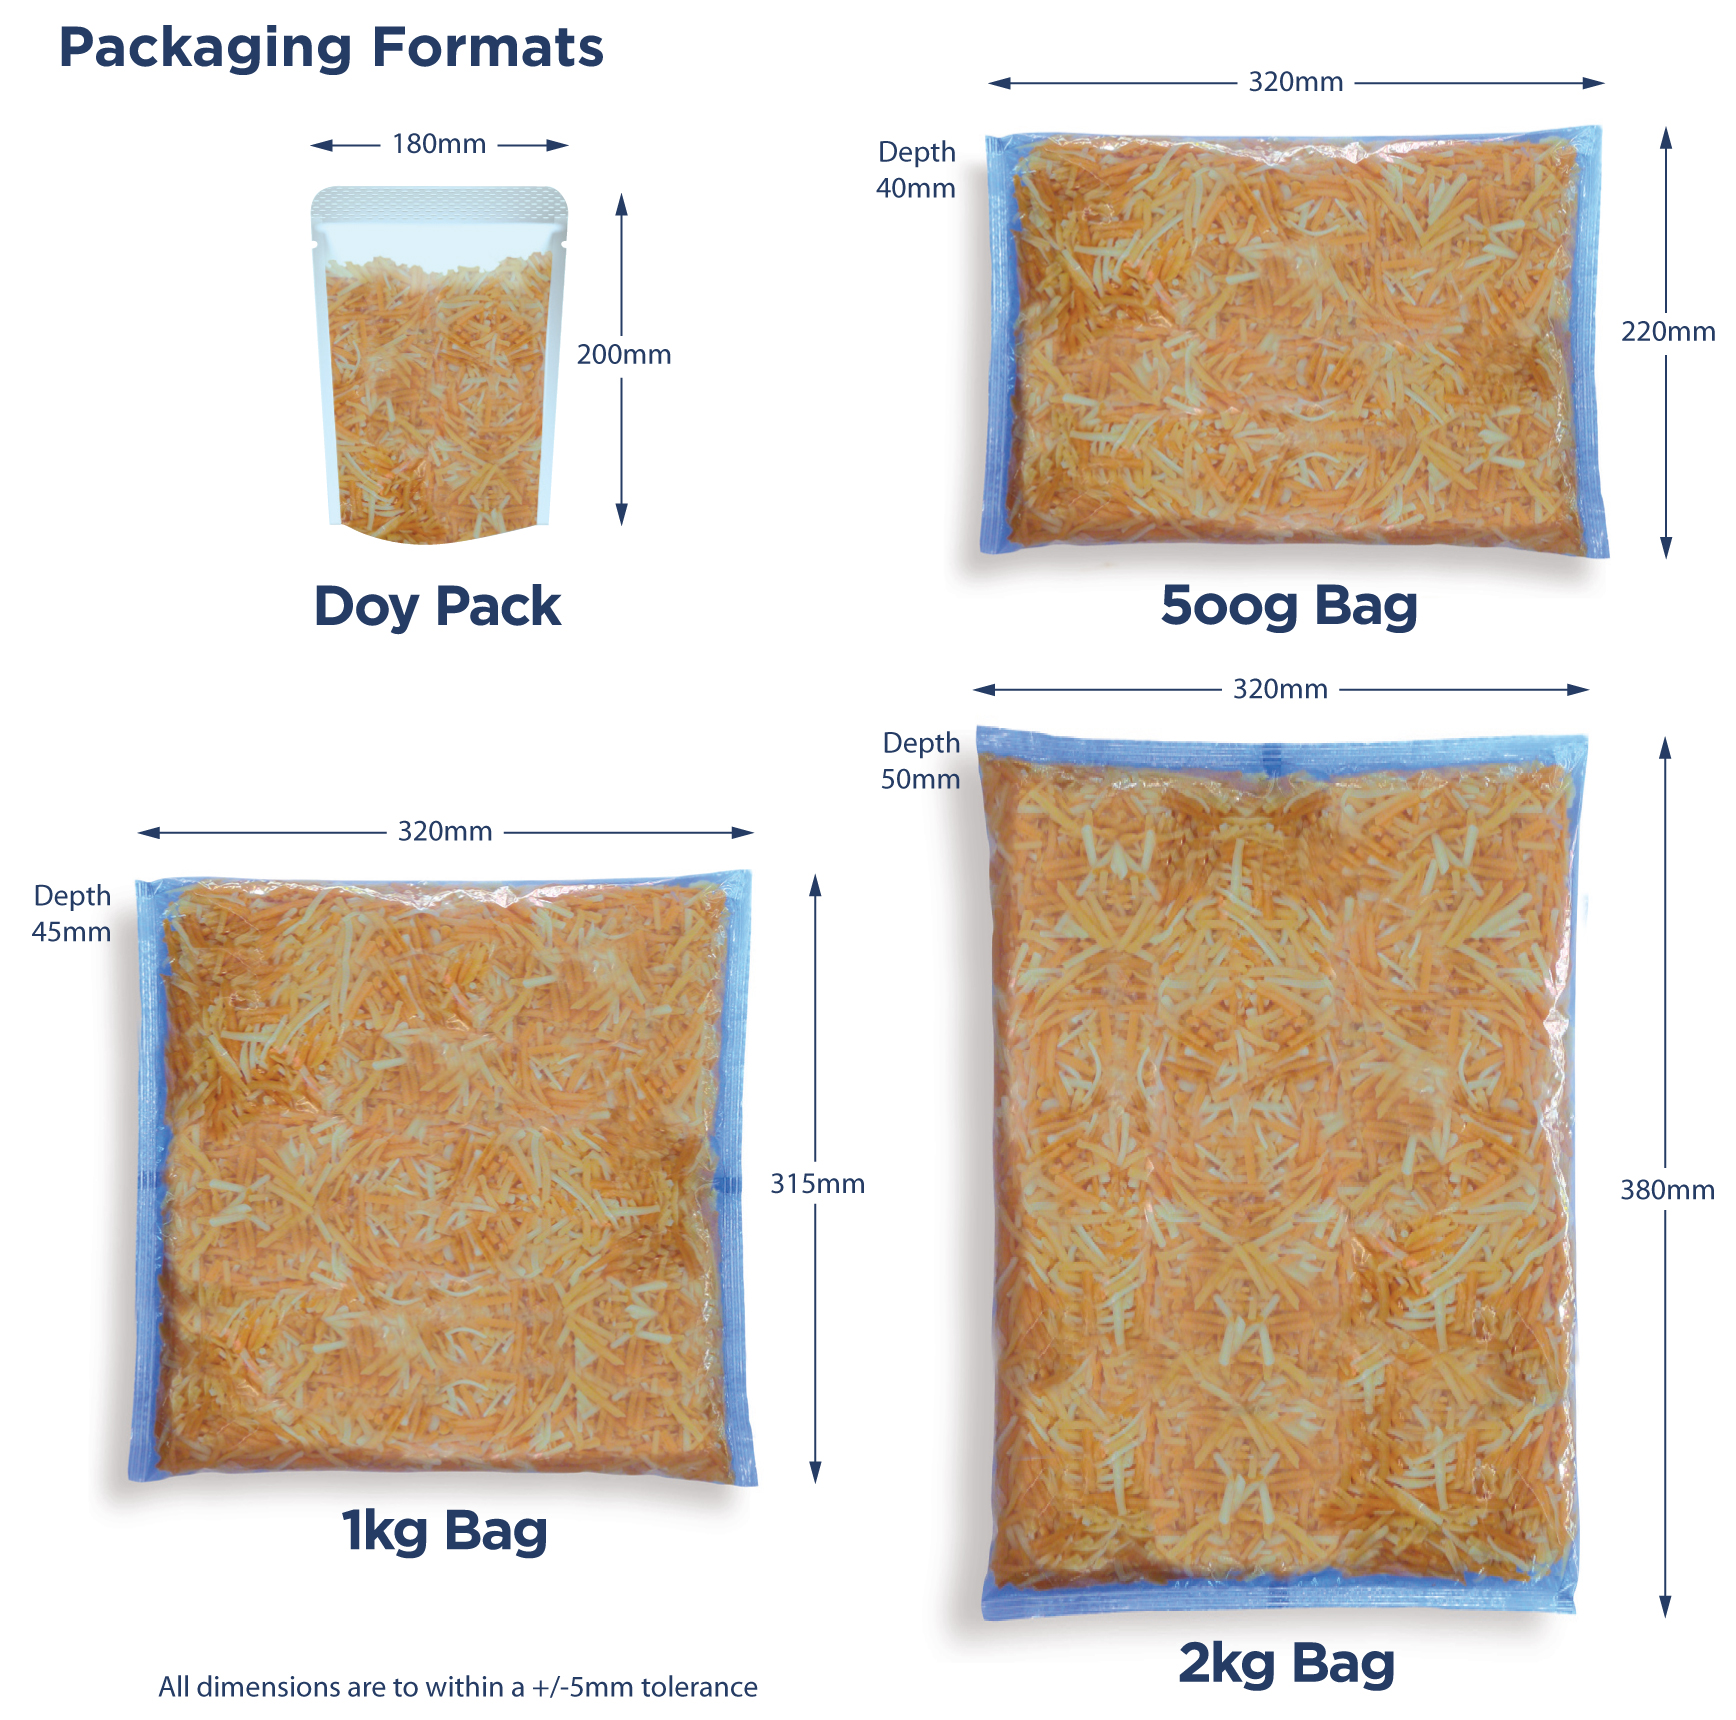 Grated Packaging Formats